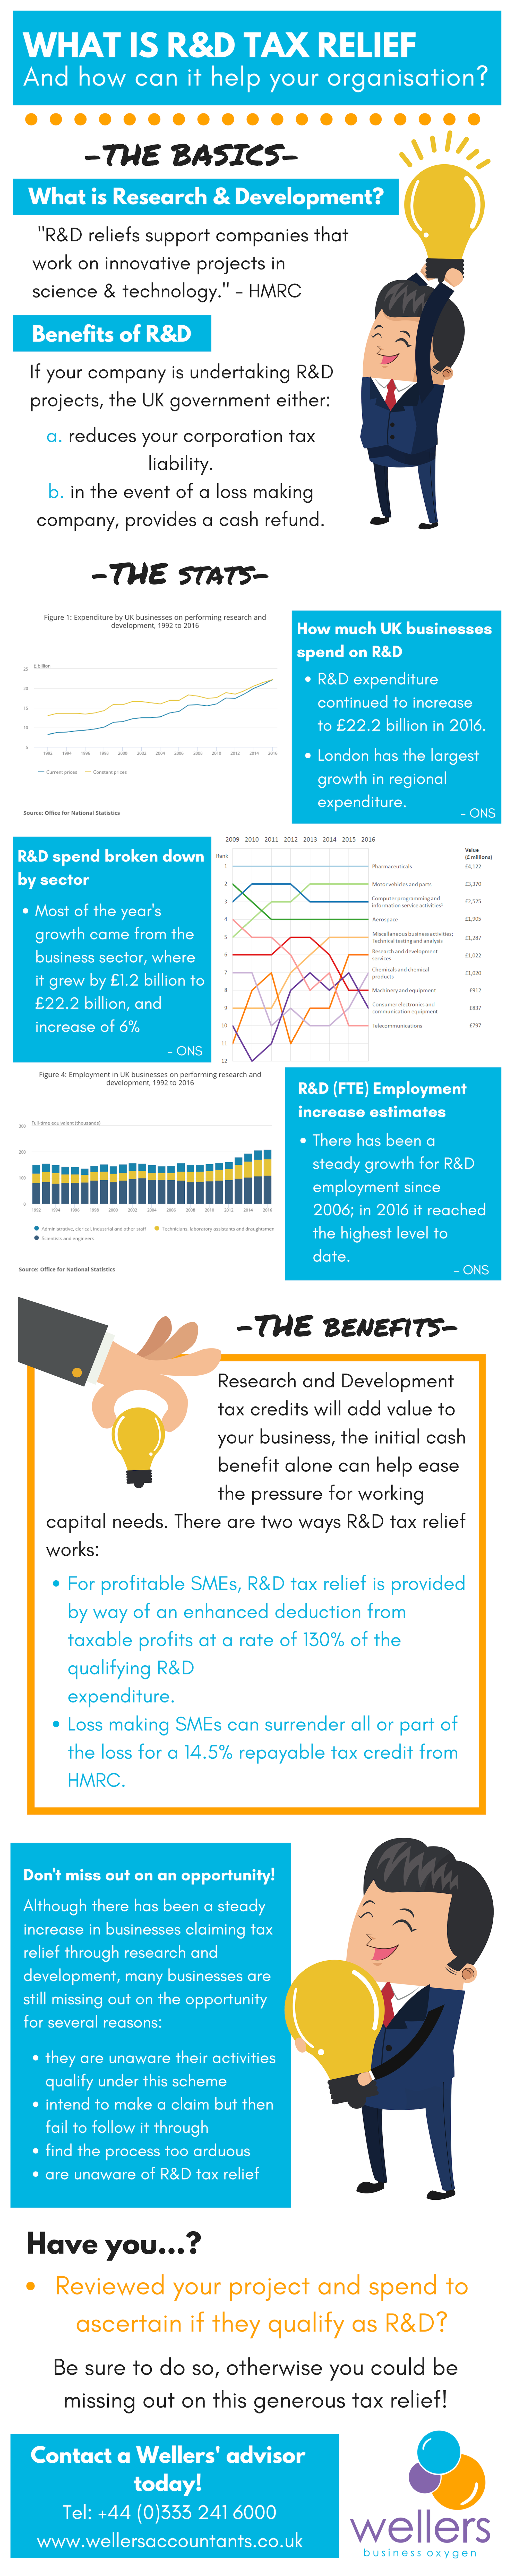 Wellers R&D Infographic Page